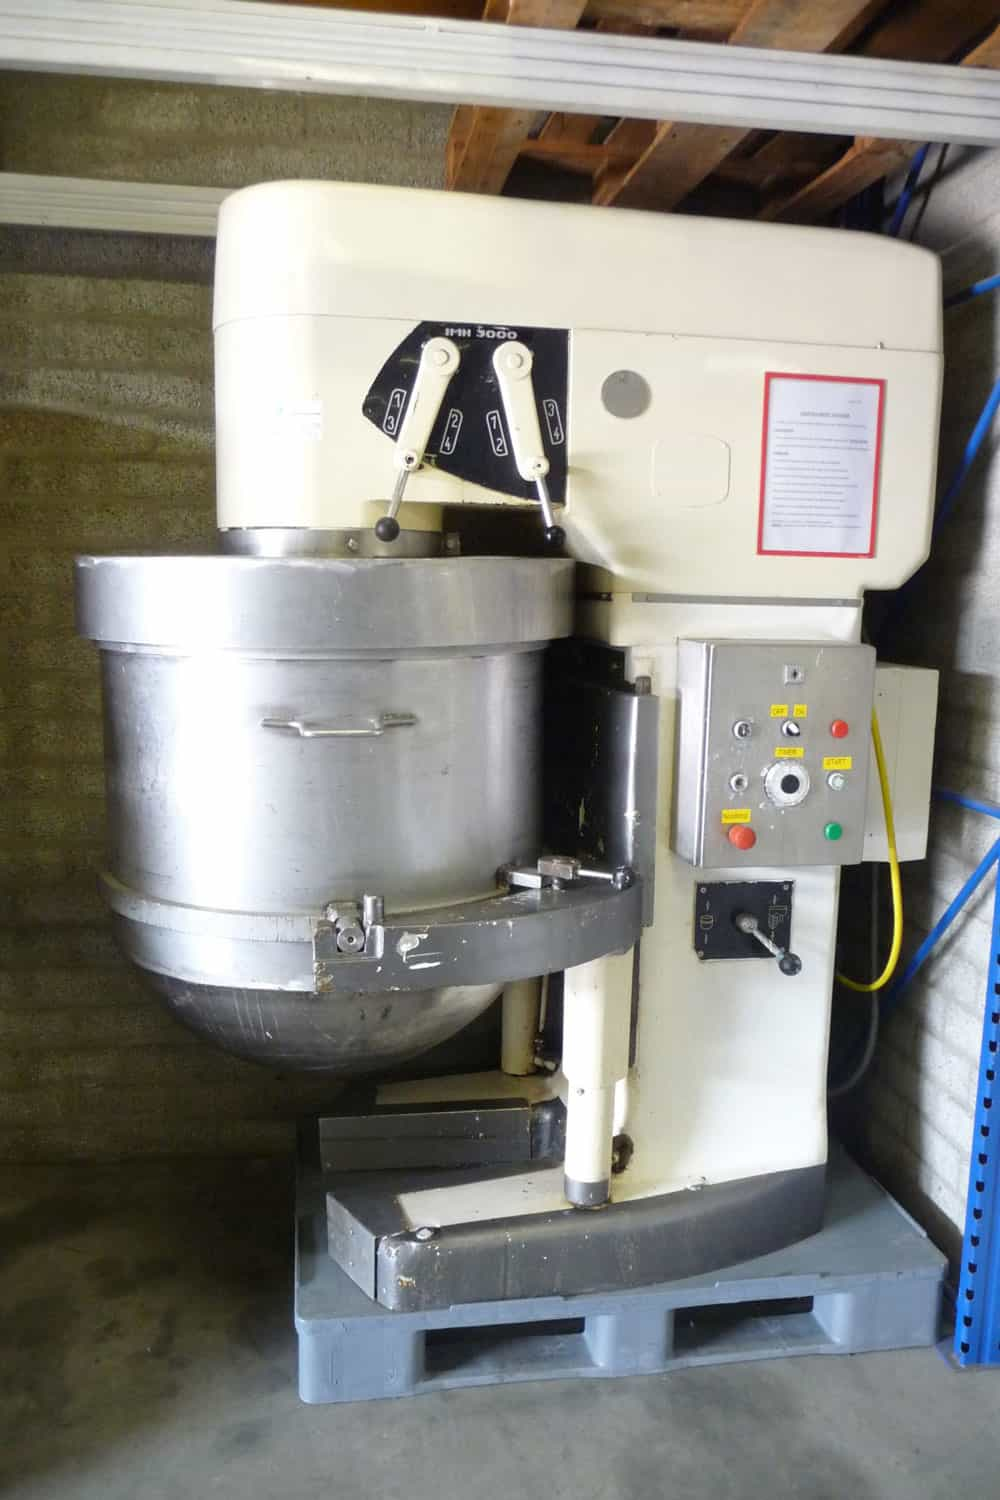 Planetary mixer 350 ltr - Tonnaer Mixing Systems